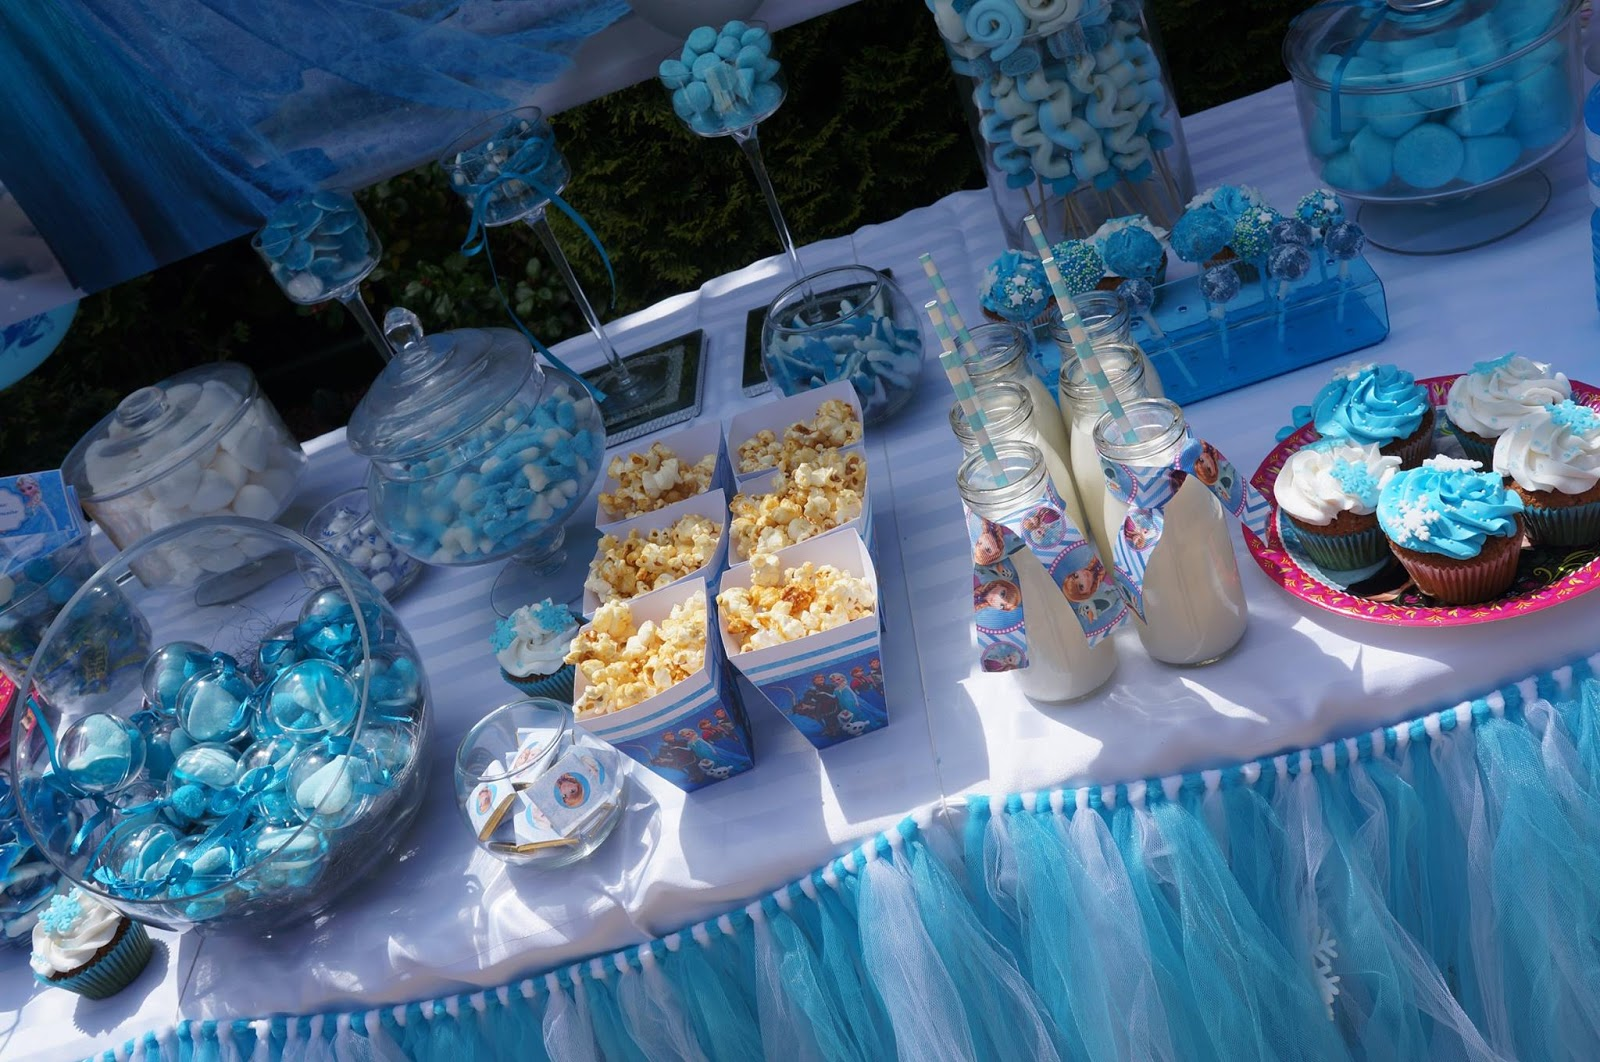 buffet de gourmandises sur table decoree en bleu sur le theme de la reine des neiges